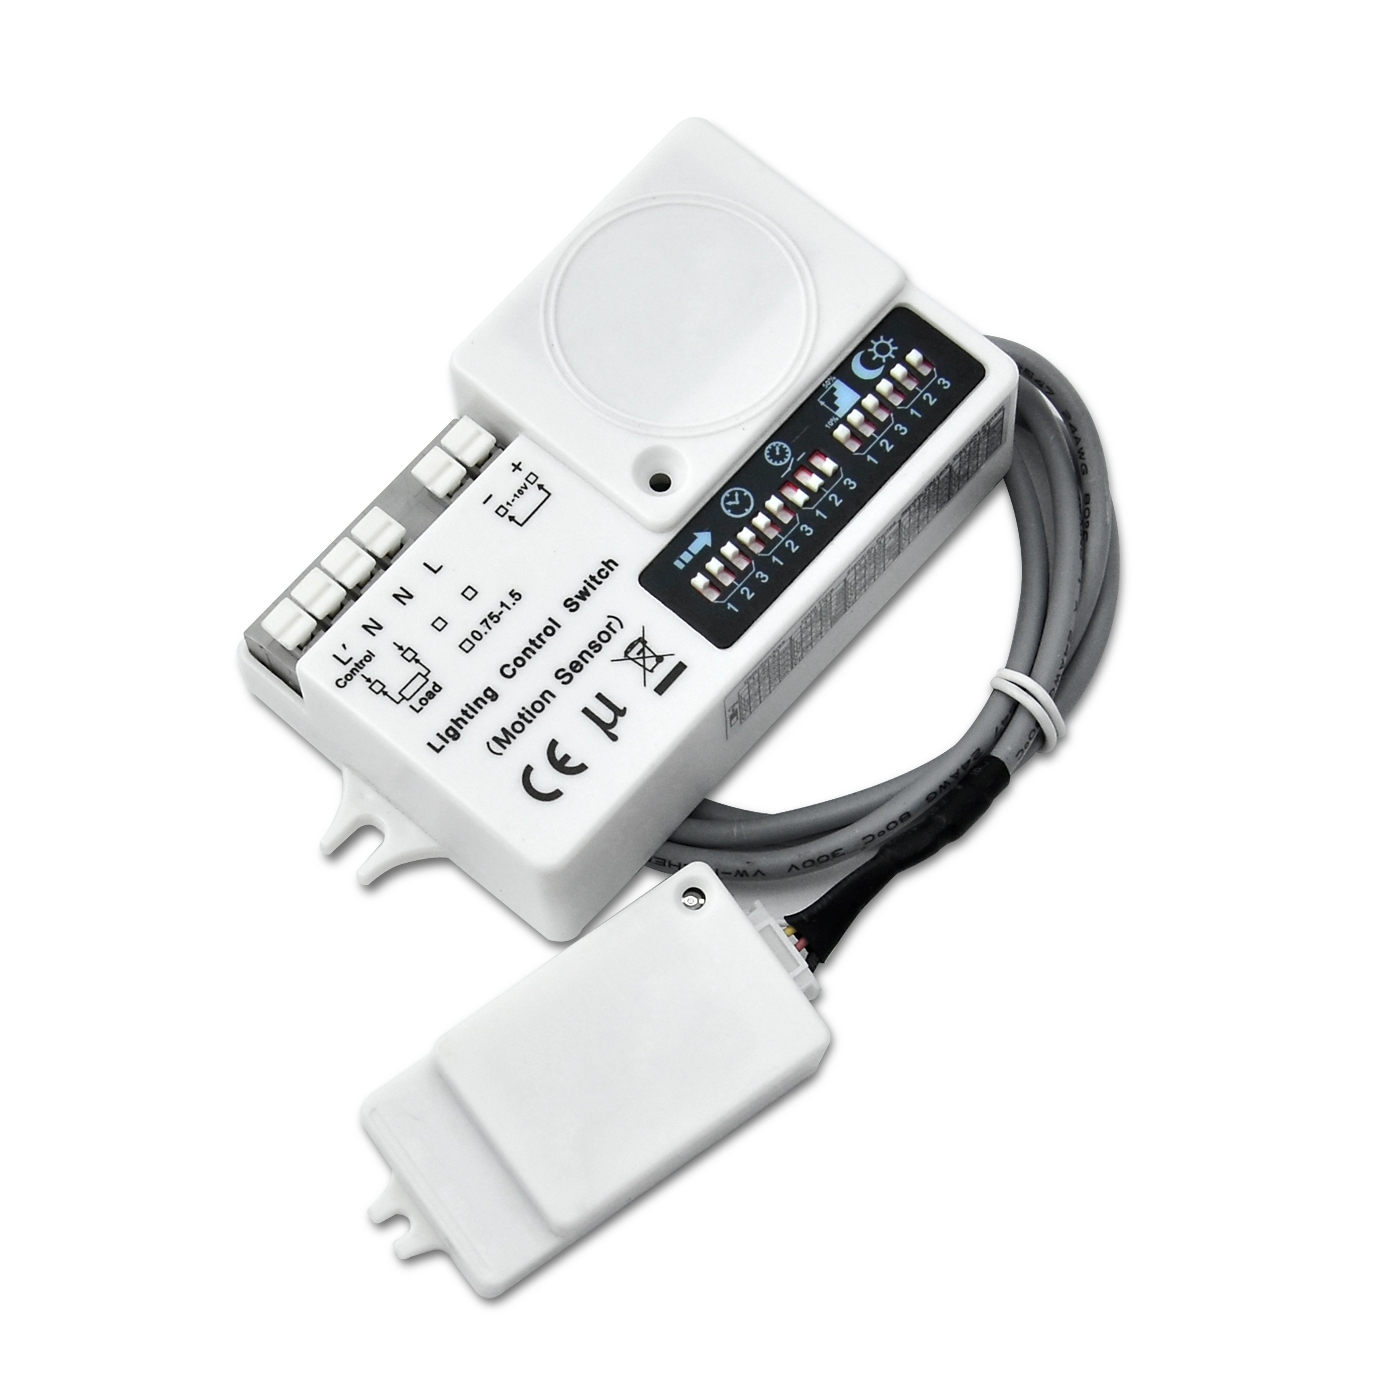 Price Sheet for 10/1-10v Controller - [out of stock]220-240VAC 1-10V Dimming Motion Sensor – Euchips Featured Image